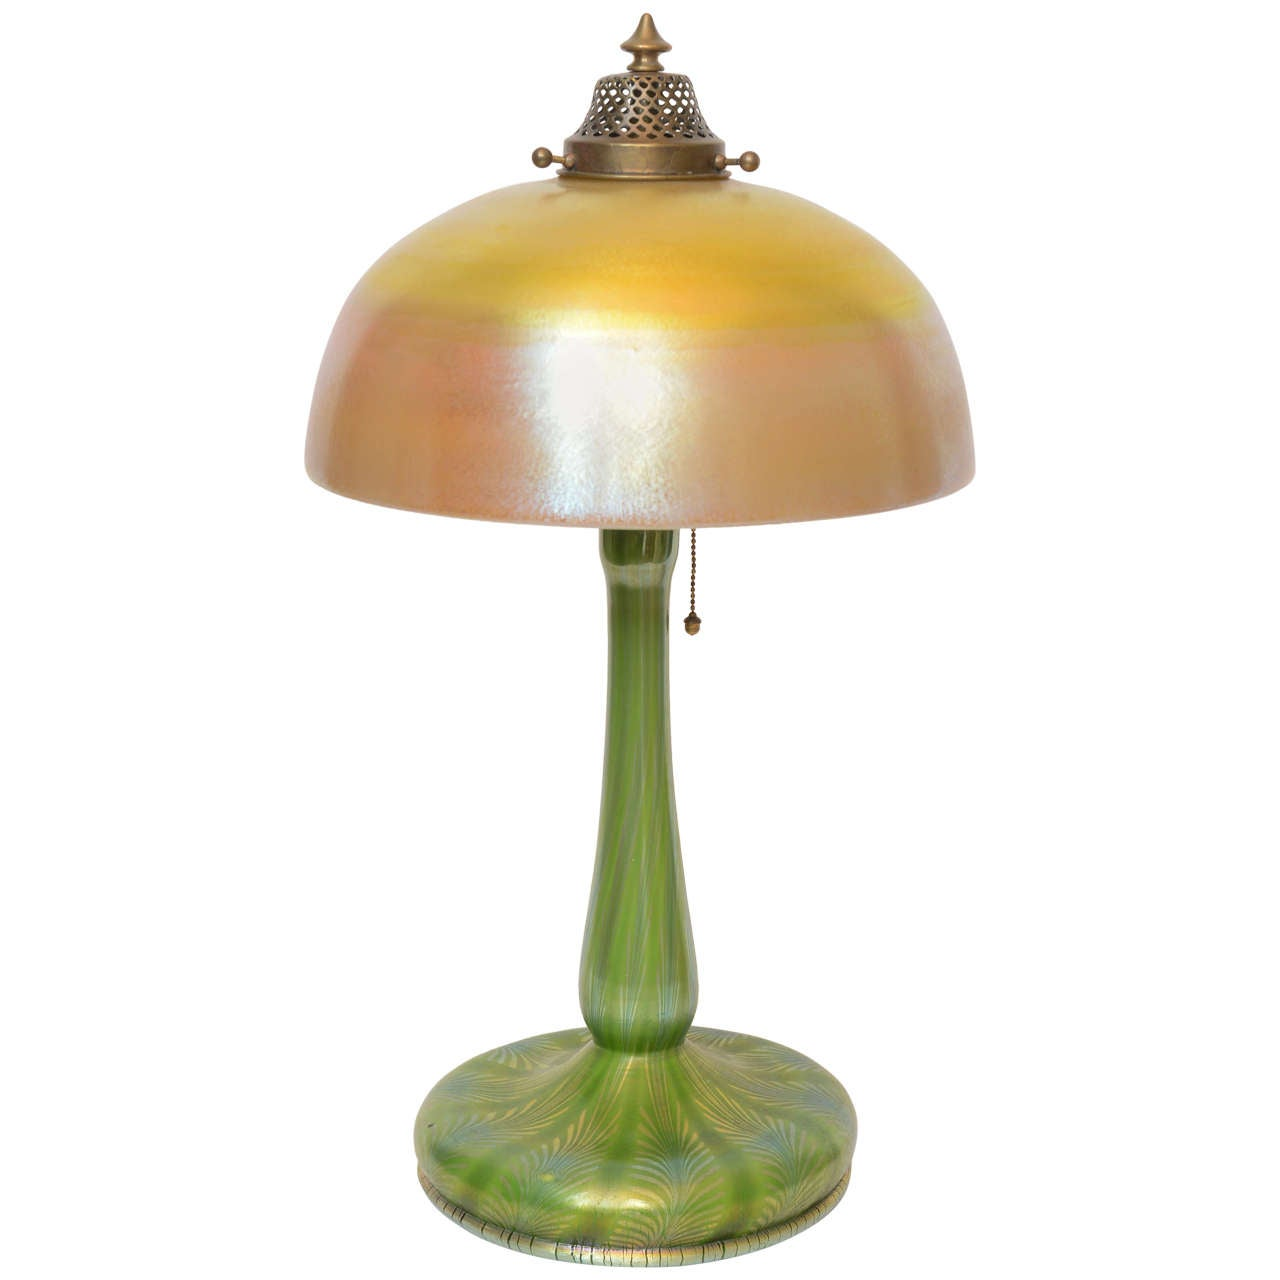 Louis comfort tiffany favrile glass table lamp for sale at for F k a table lamp